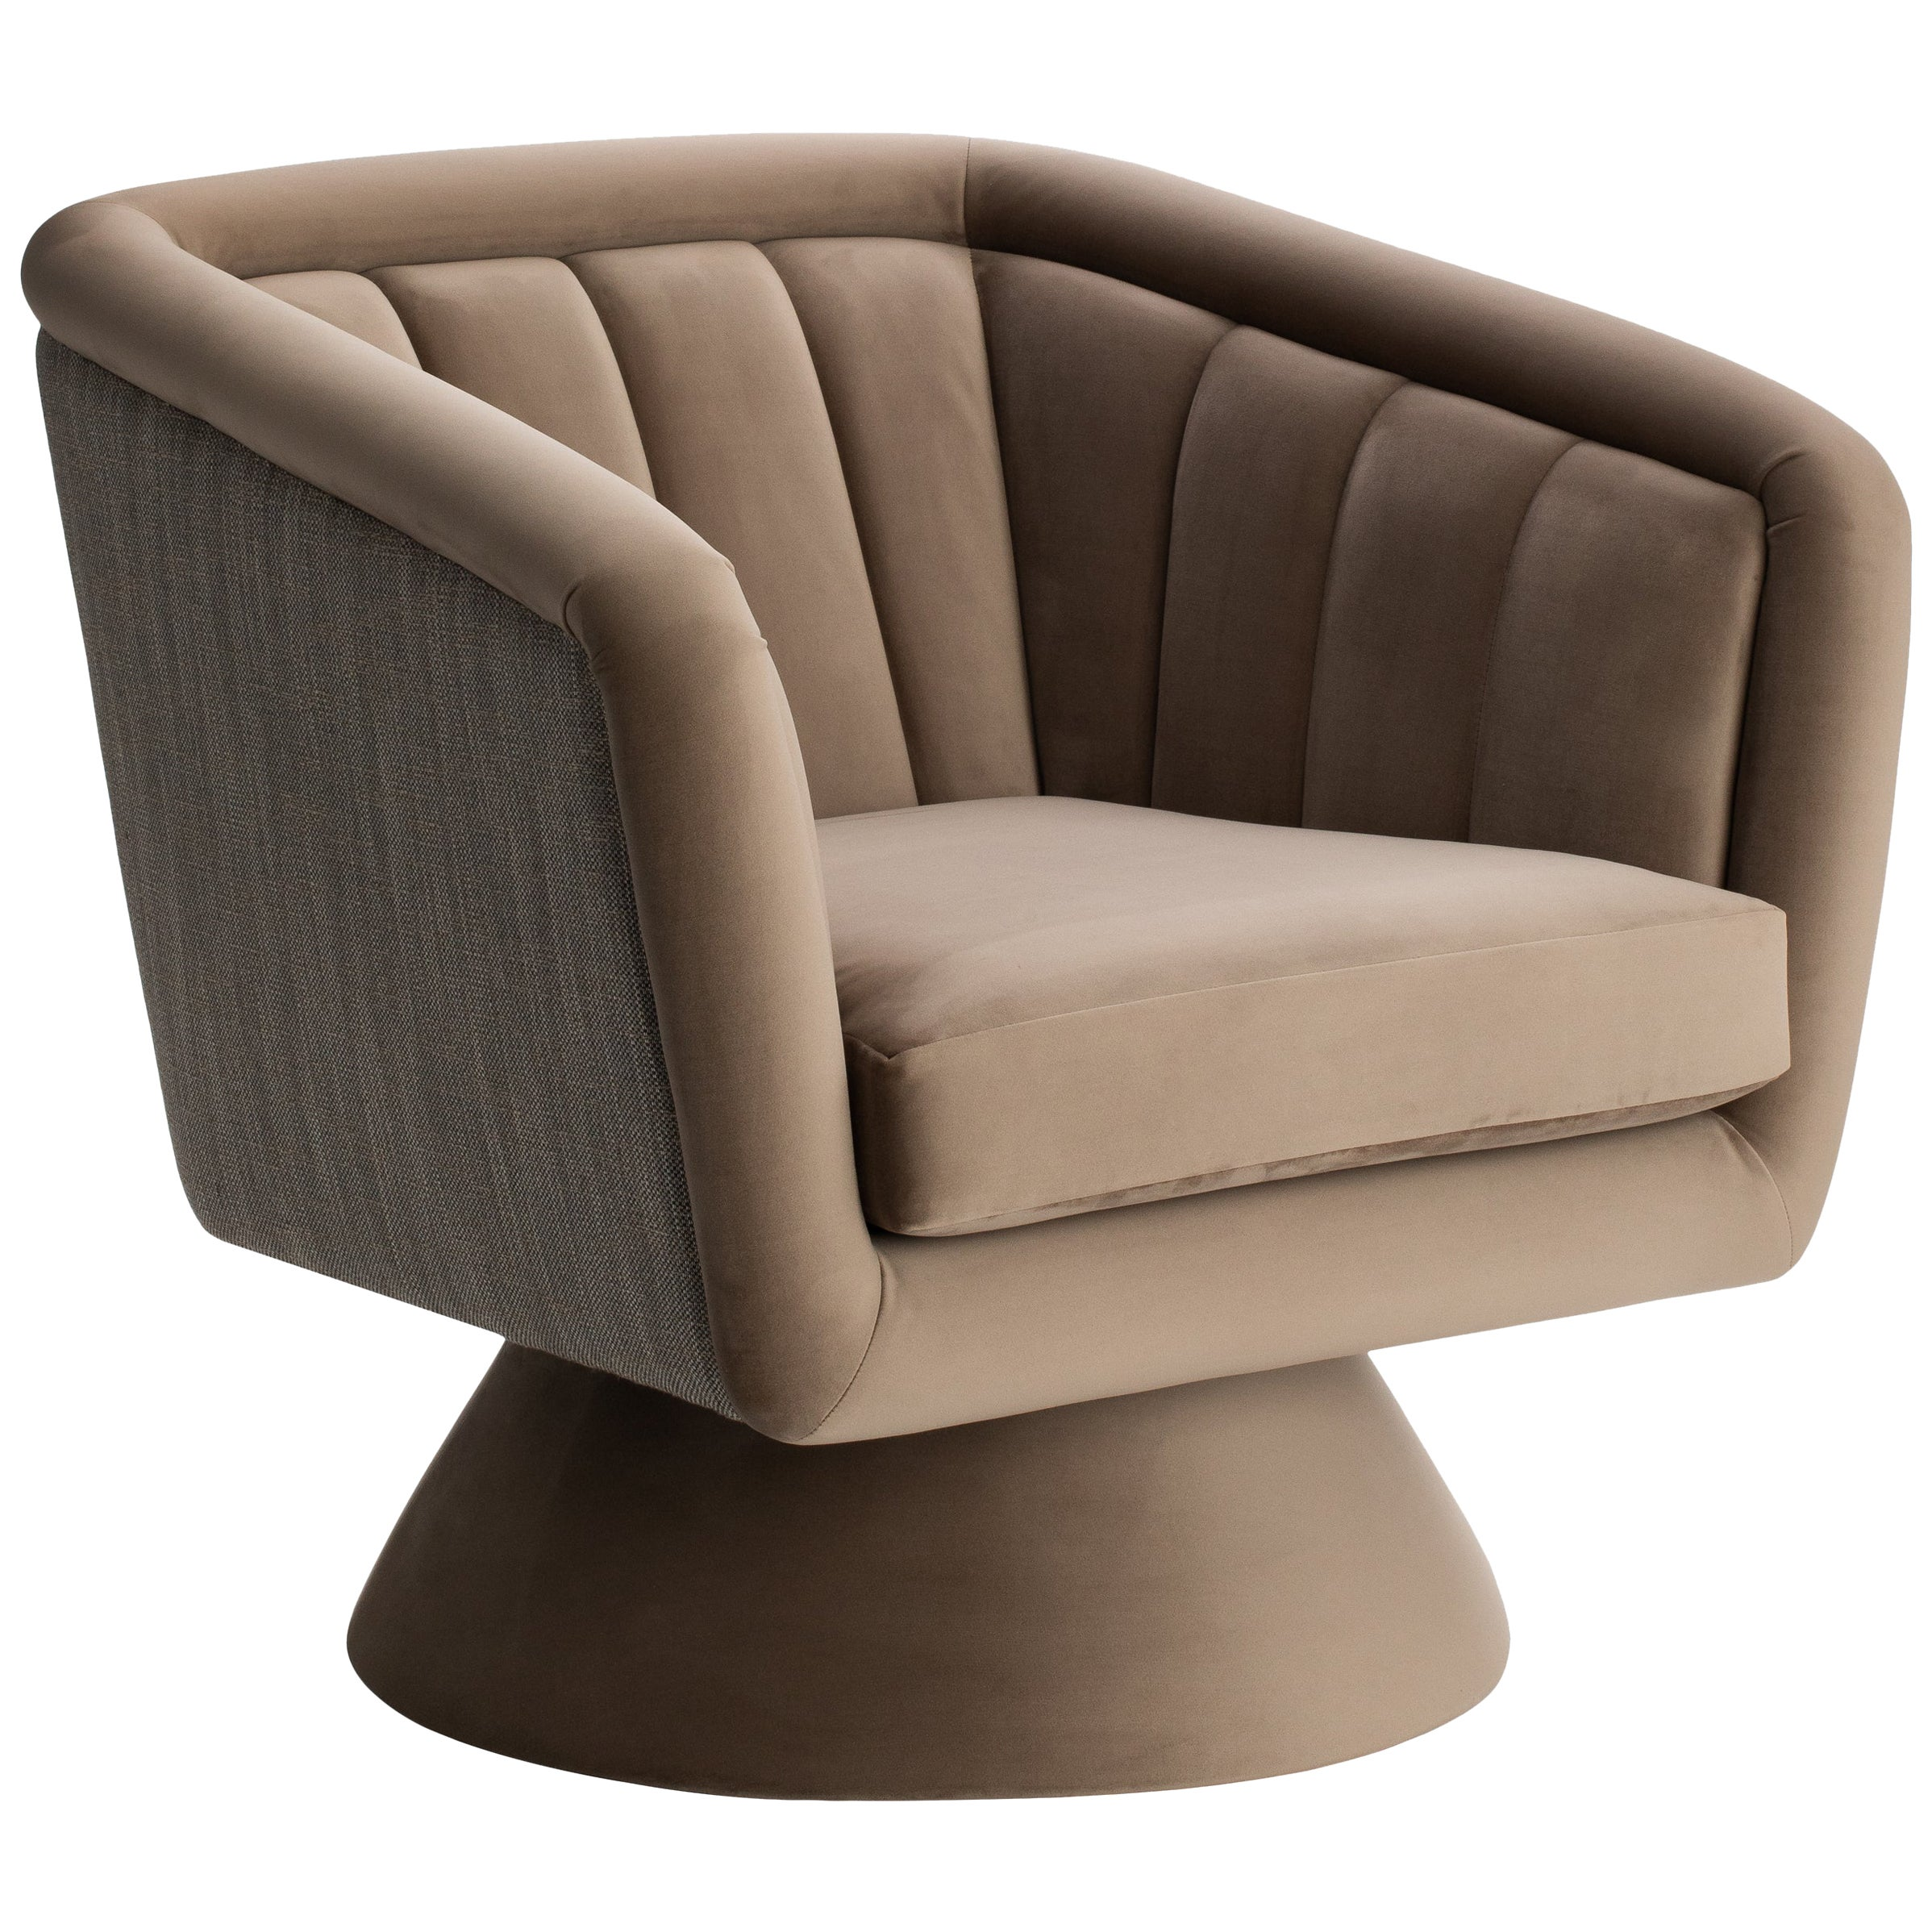 Caprice Swivel Armchair with two fabrics